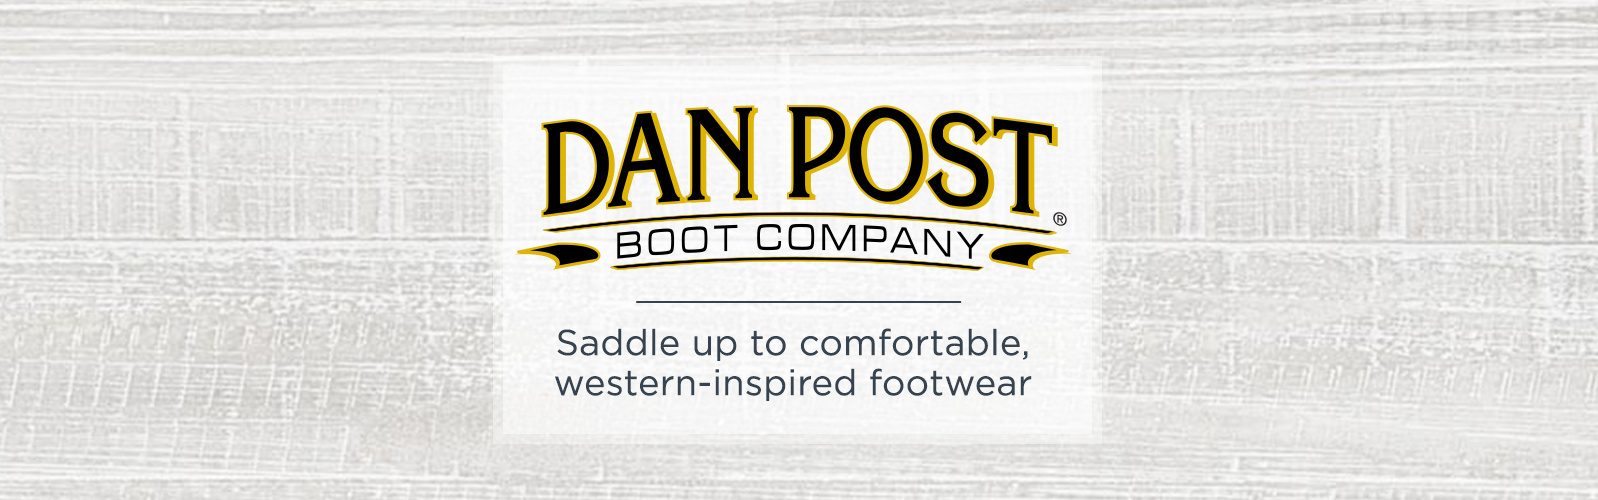 Dan Post — Saddle up to comfortable, western-inspired footwear